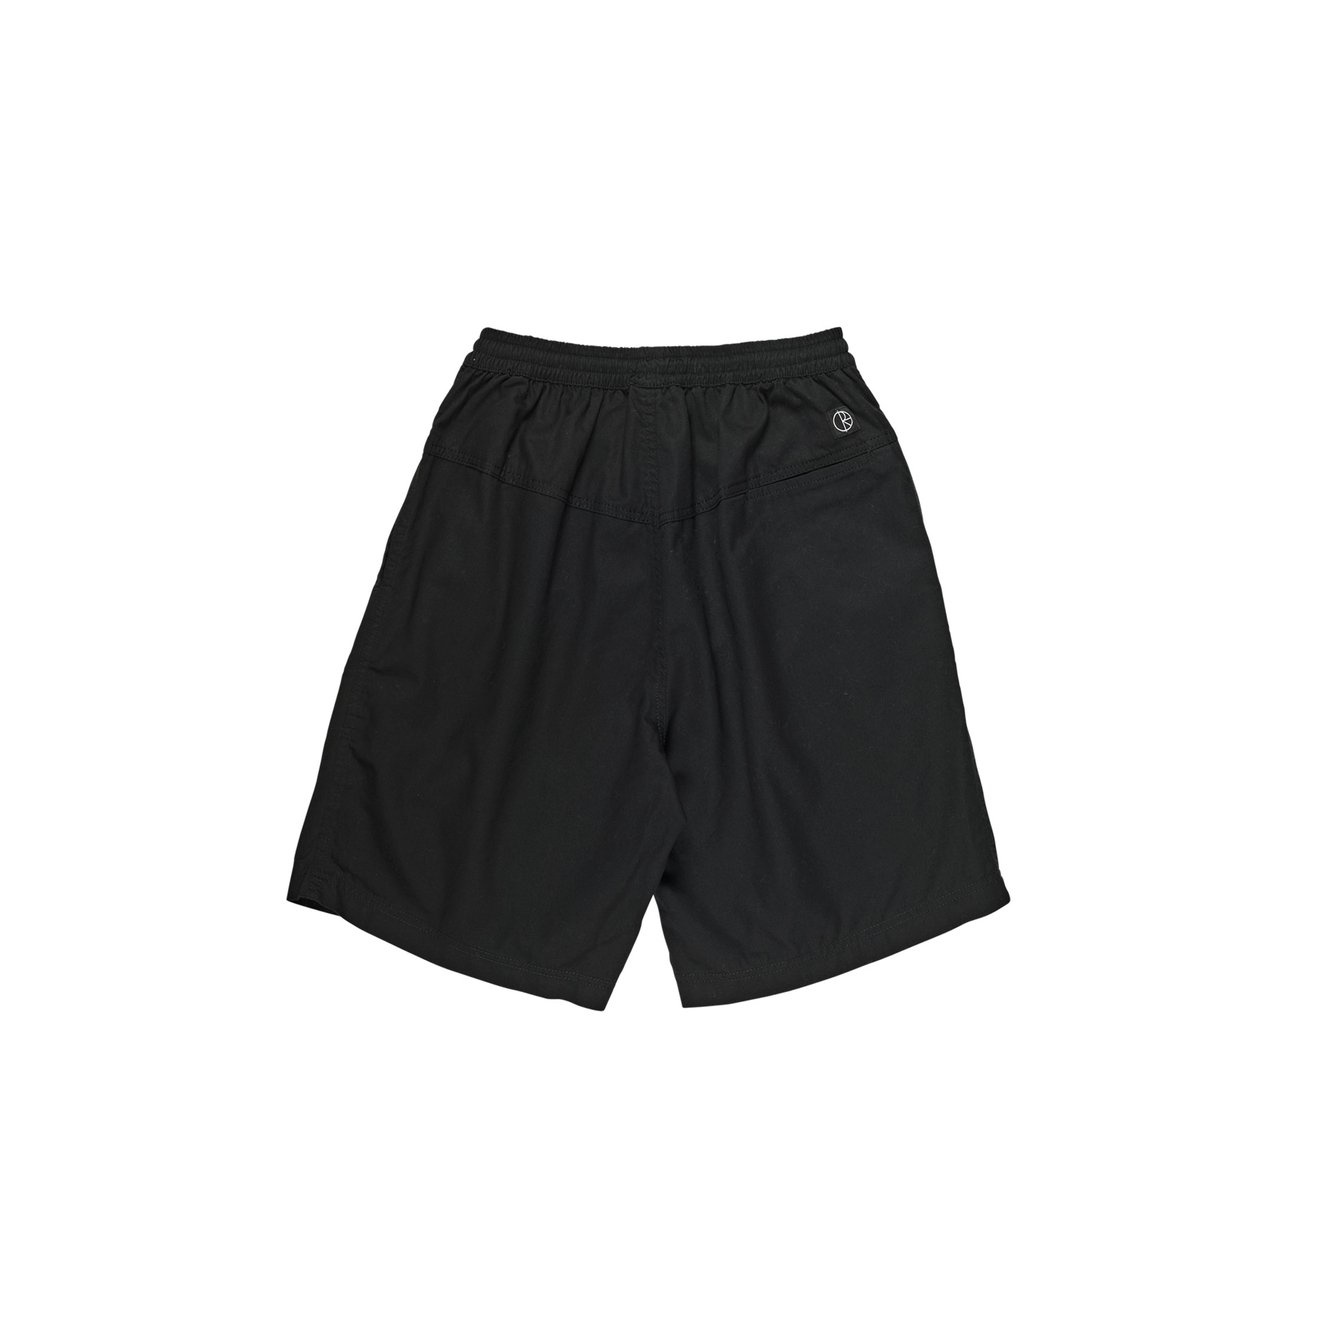 Polar Skate Co. Surf Shorts Black/Black